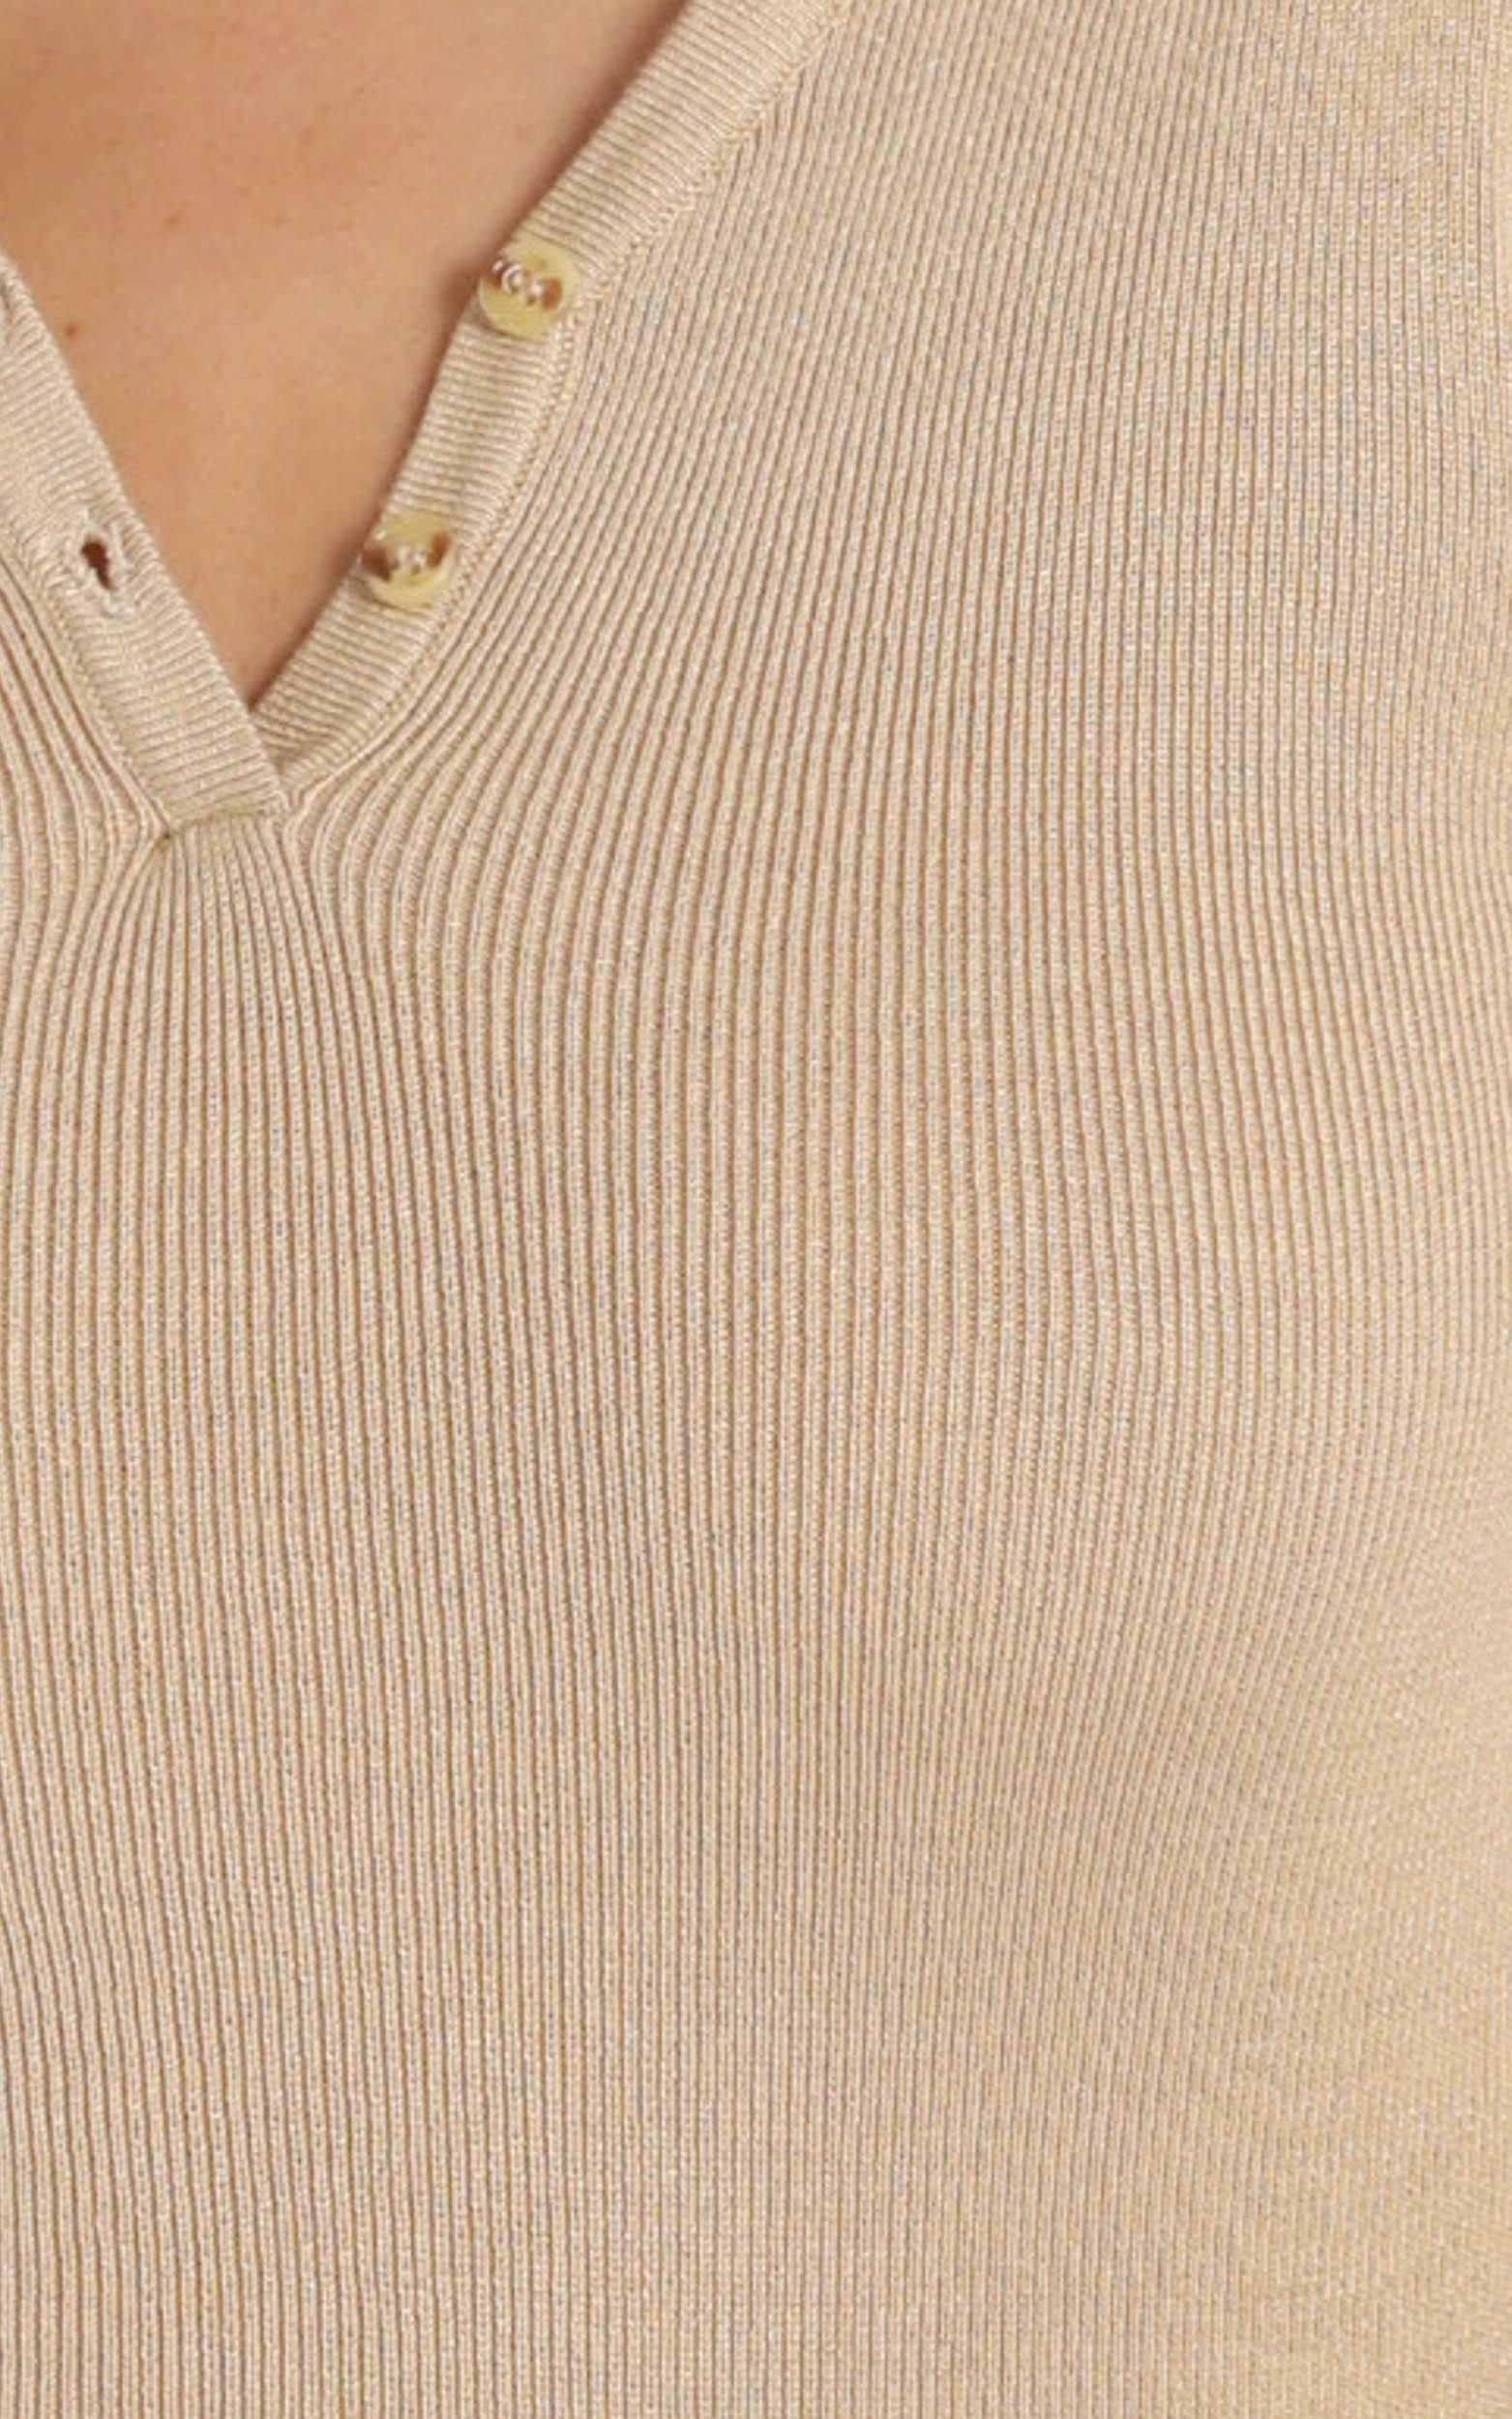 Promising Future knit top in camel - 20 (XXXXL), Camel, hi-res image number null